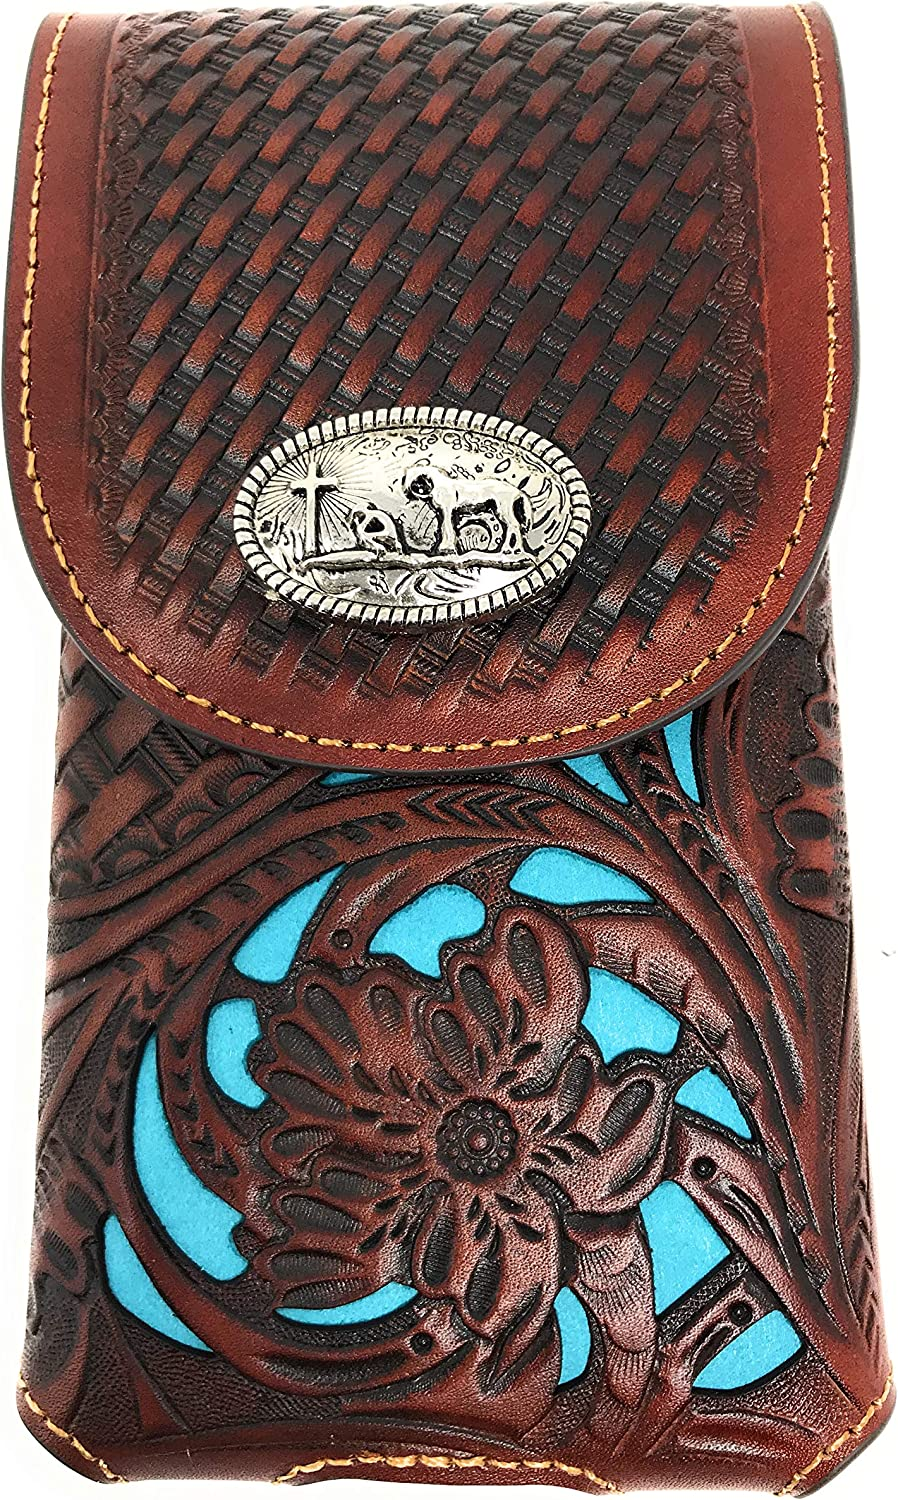 Texas West Western Cowboy Tooled Floral Leather Praying Cowboy Concho Belt Loop Extra Large Cell Phone Holster Case (Brown/Turquoise)